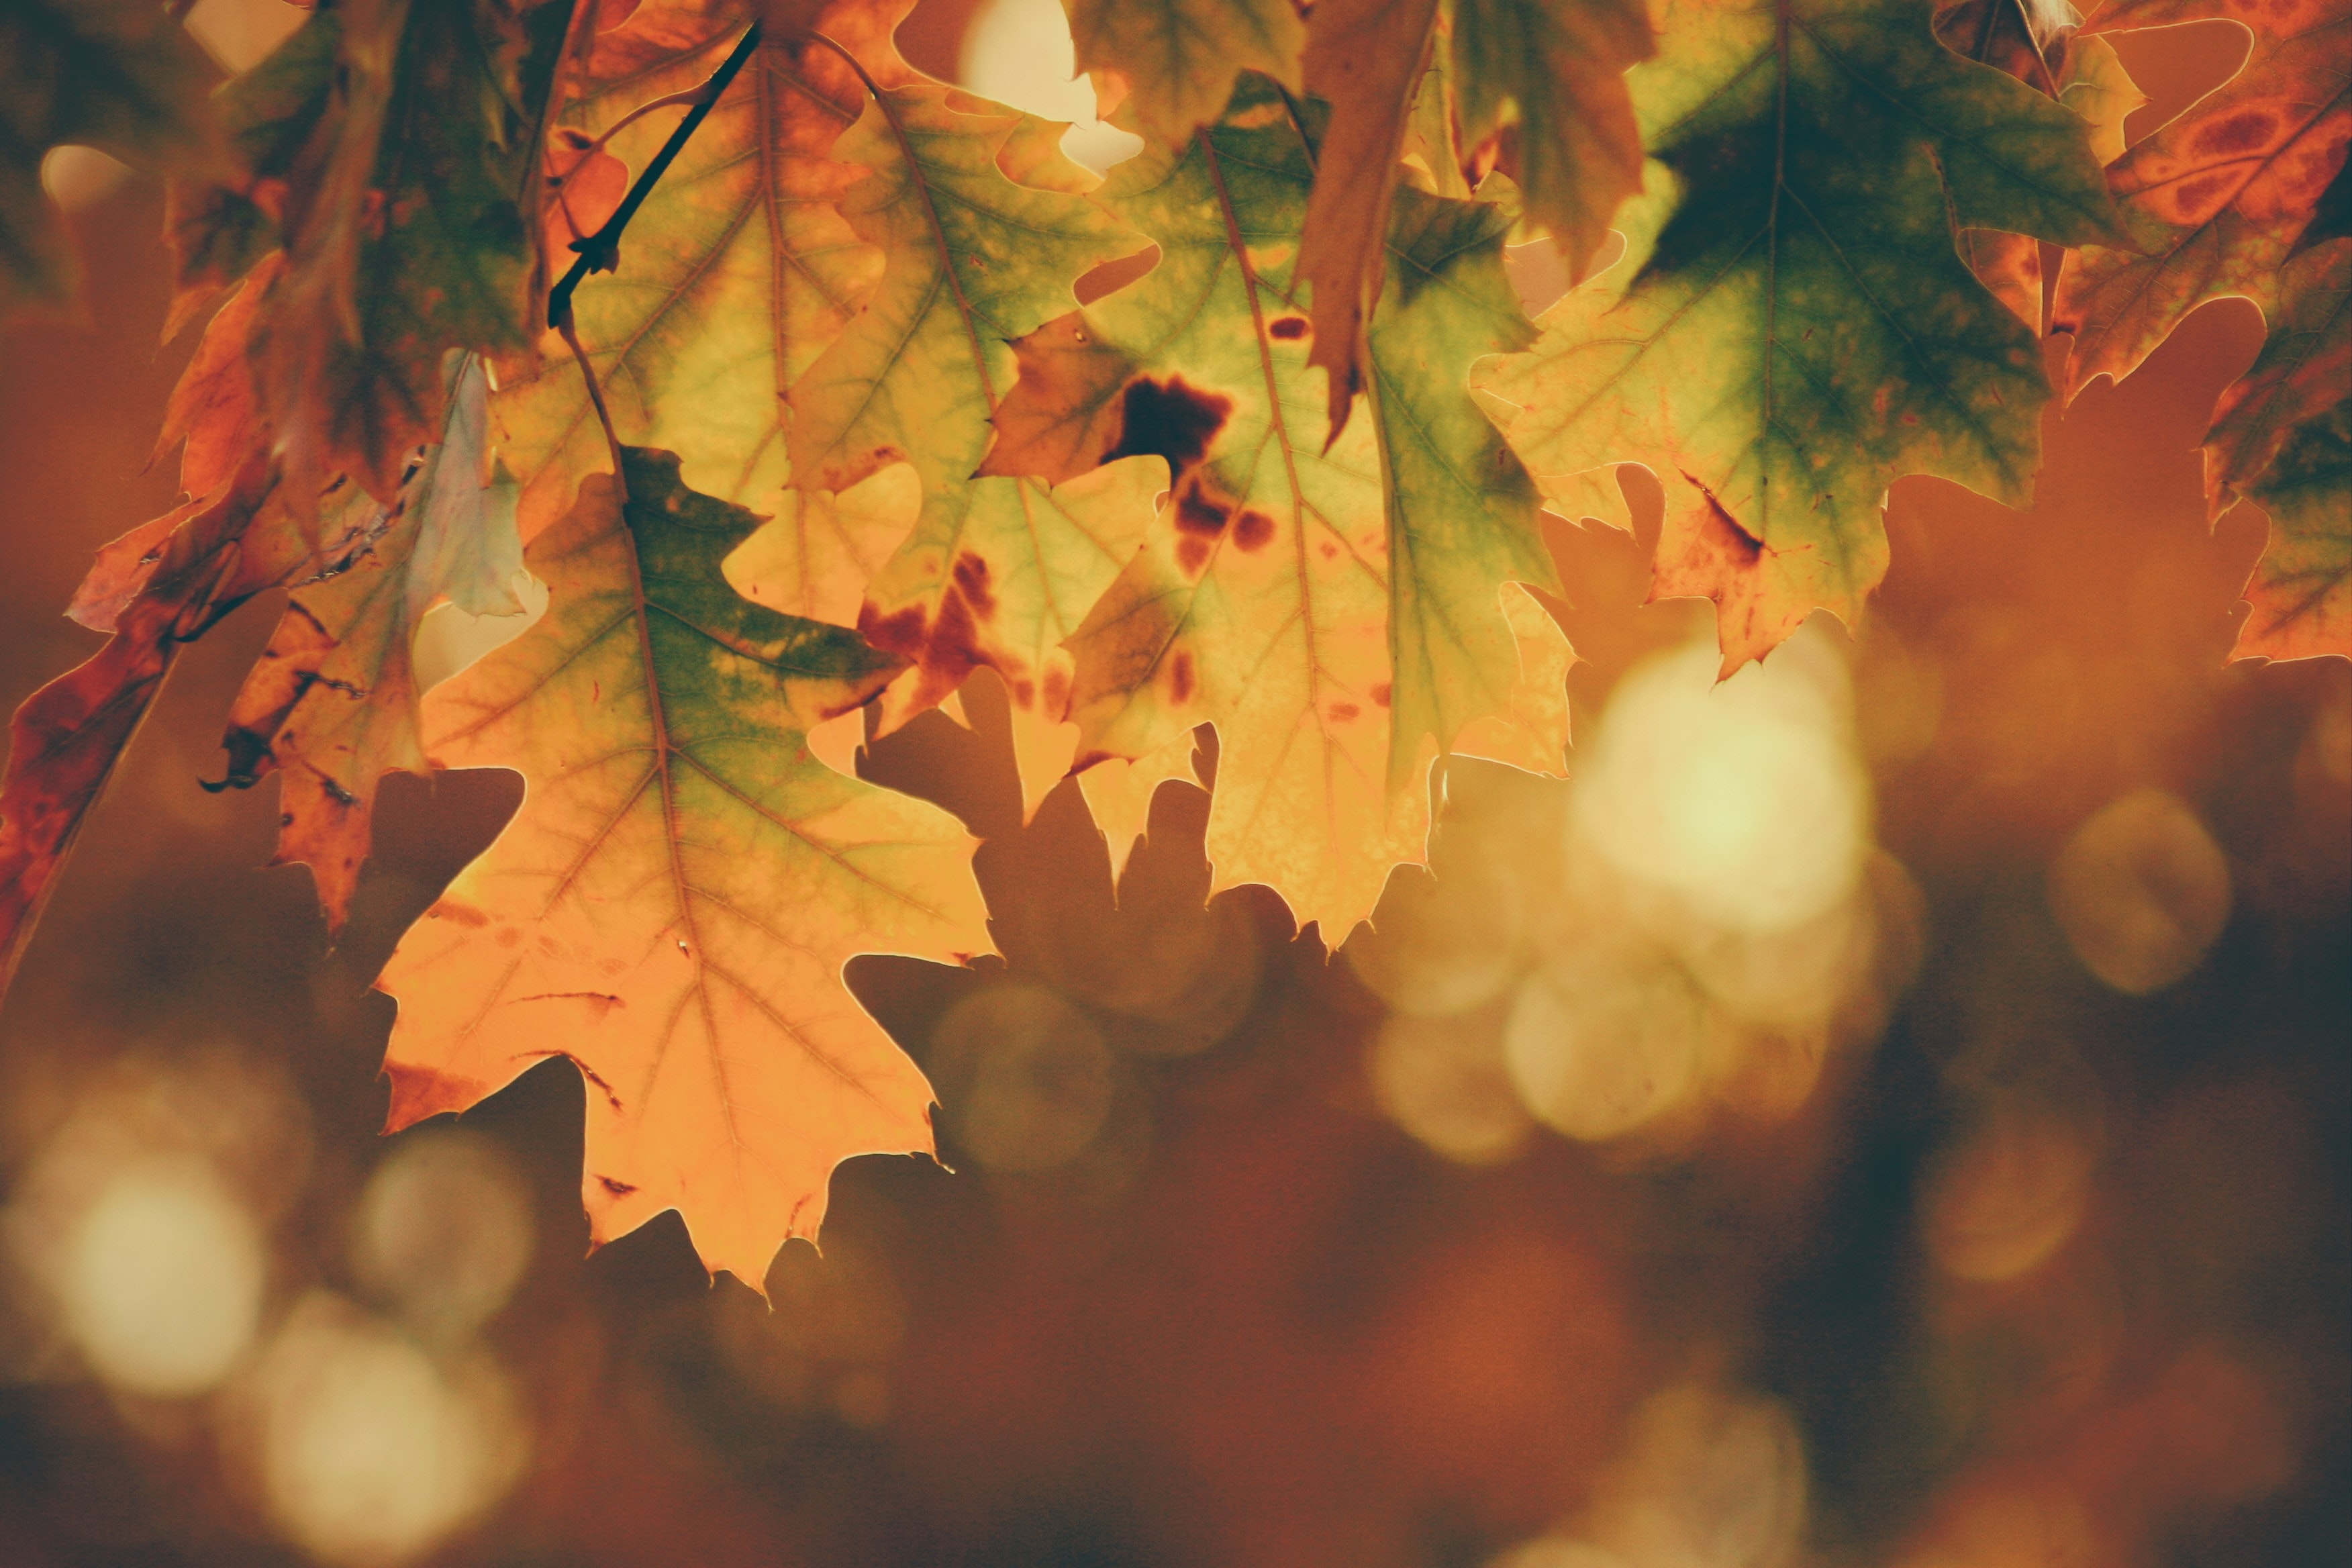 Close up of fall leaves that orange, red, and brown